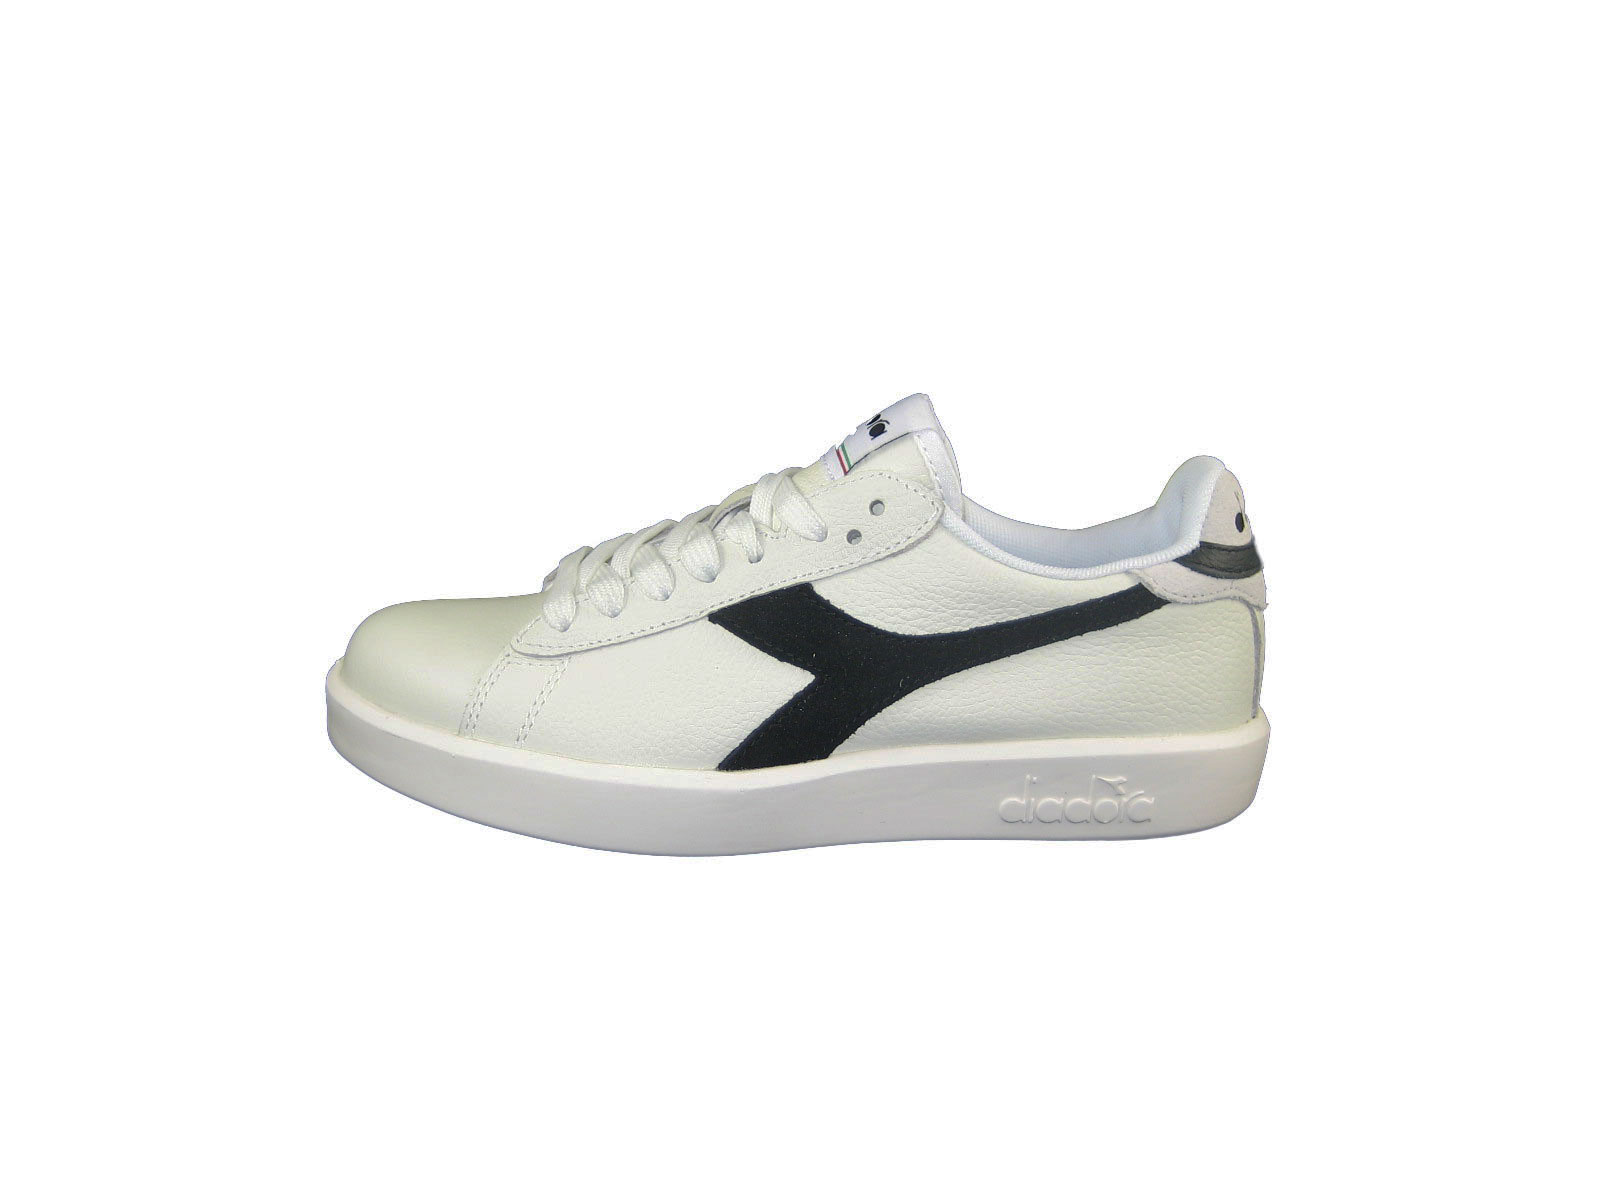 E18 Diadora Game Widepellebi Nero.jpg